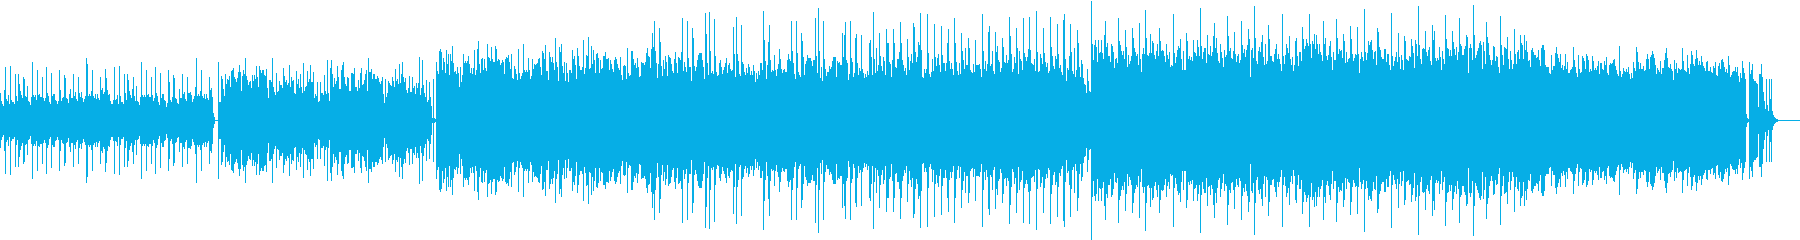 Fashionable and dramatic romance pop's reproduced waveform